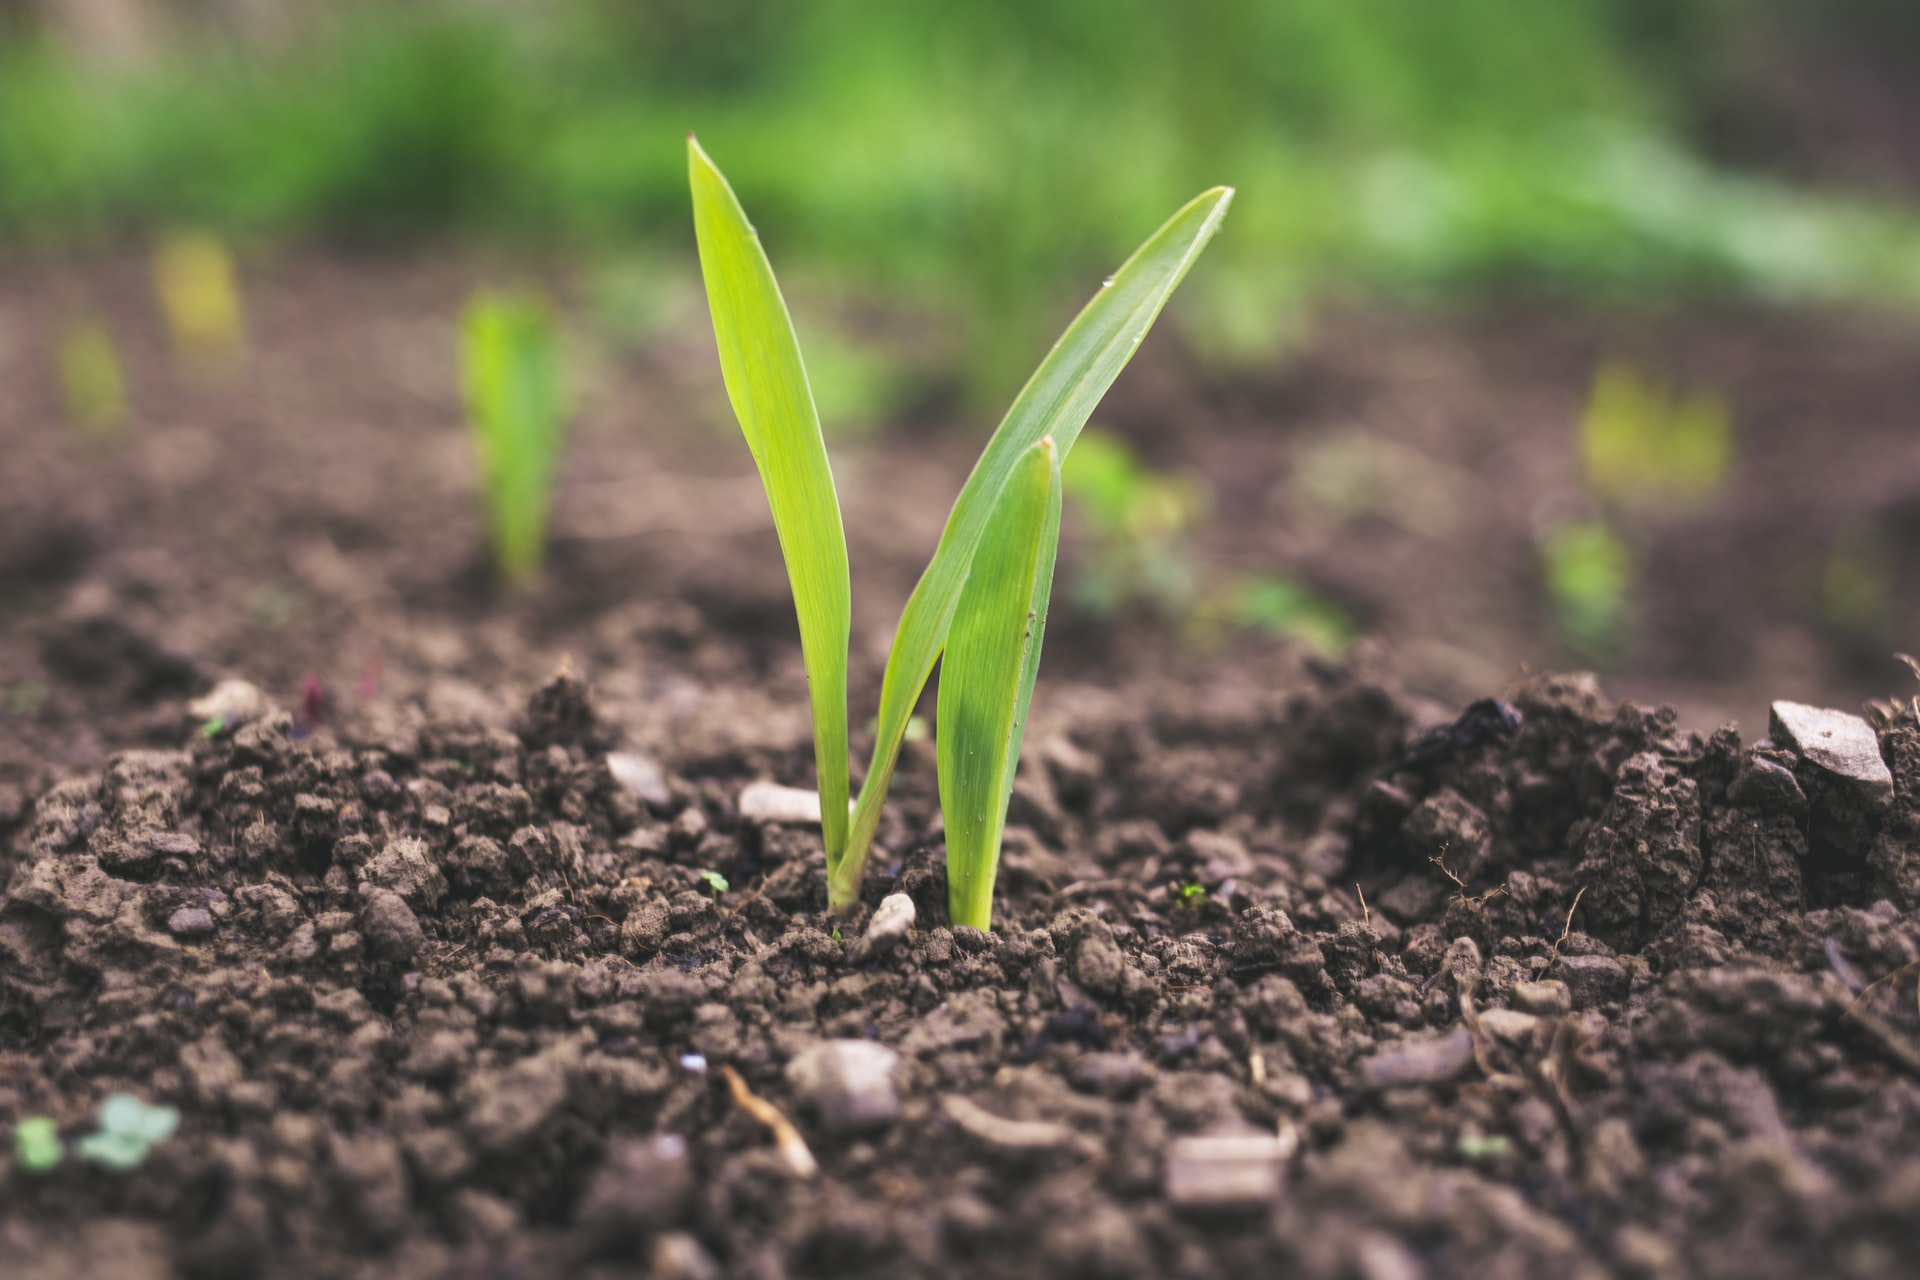 Agriculture sector in 2021 Still a growth story Brandnewsday